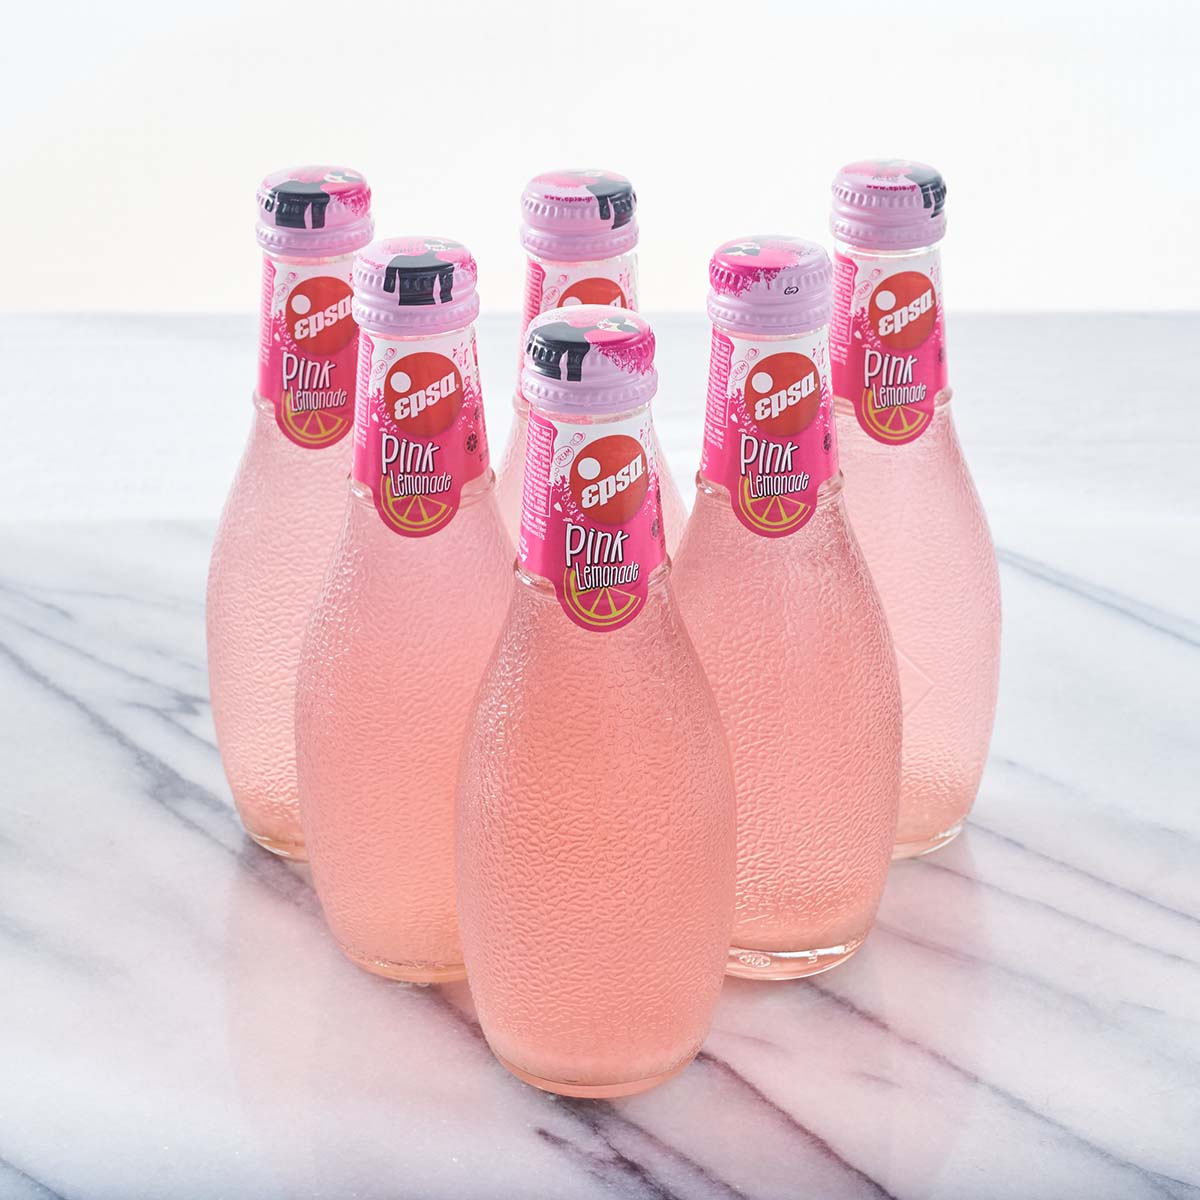 Sparkling Juice Drinks - Pink Lemonade